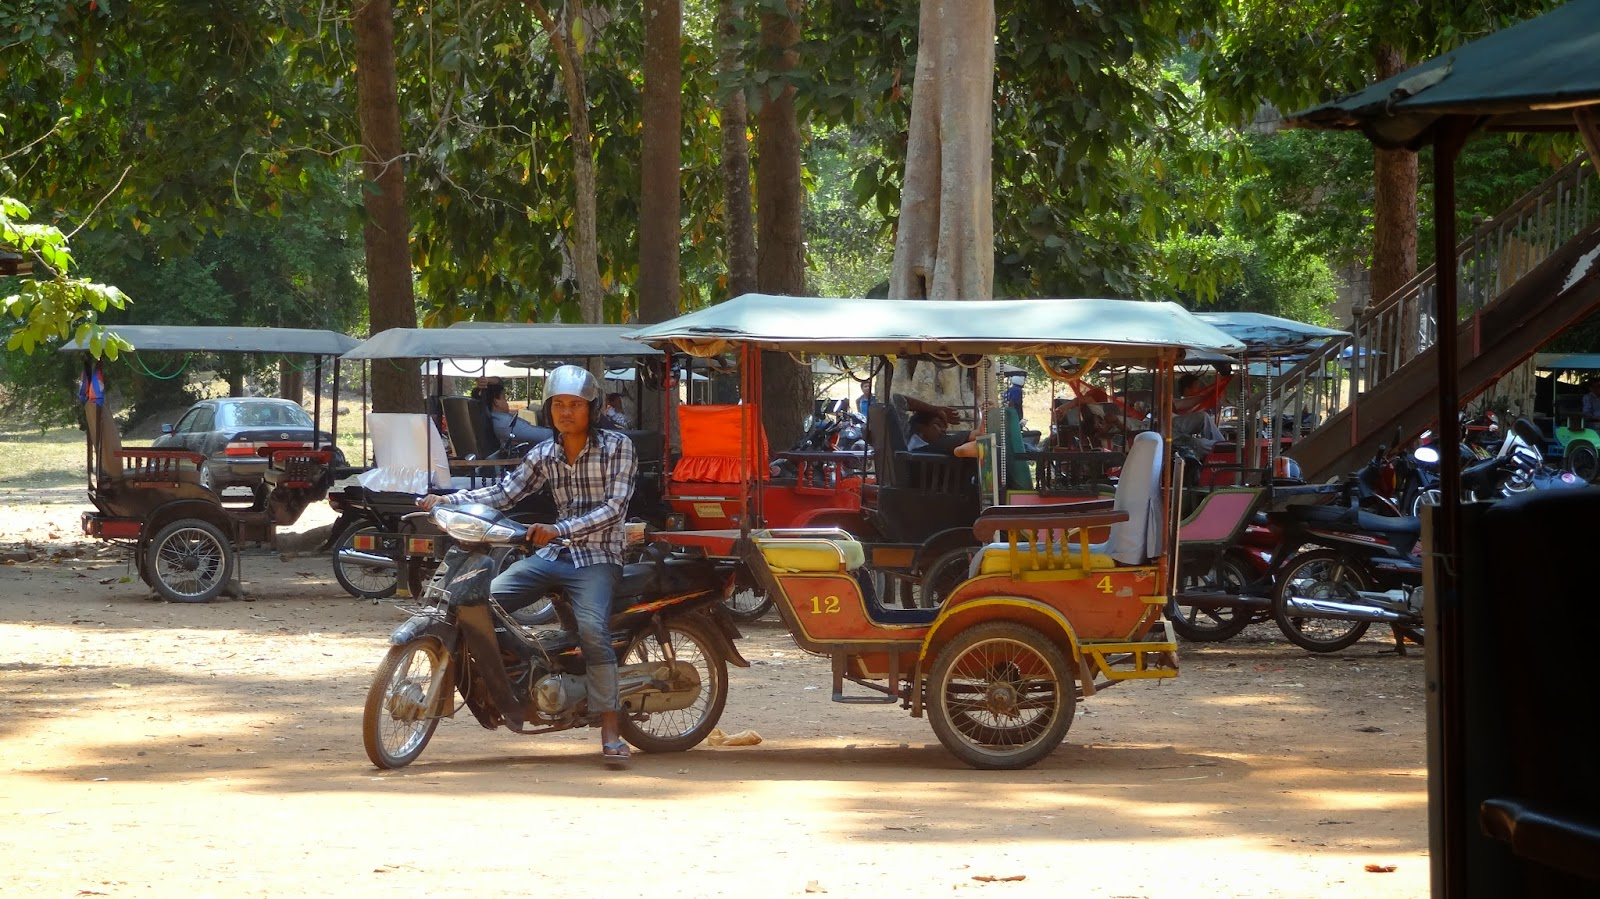 Cambodia, Siem Reap, transportation